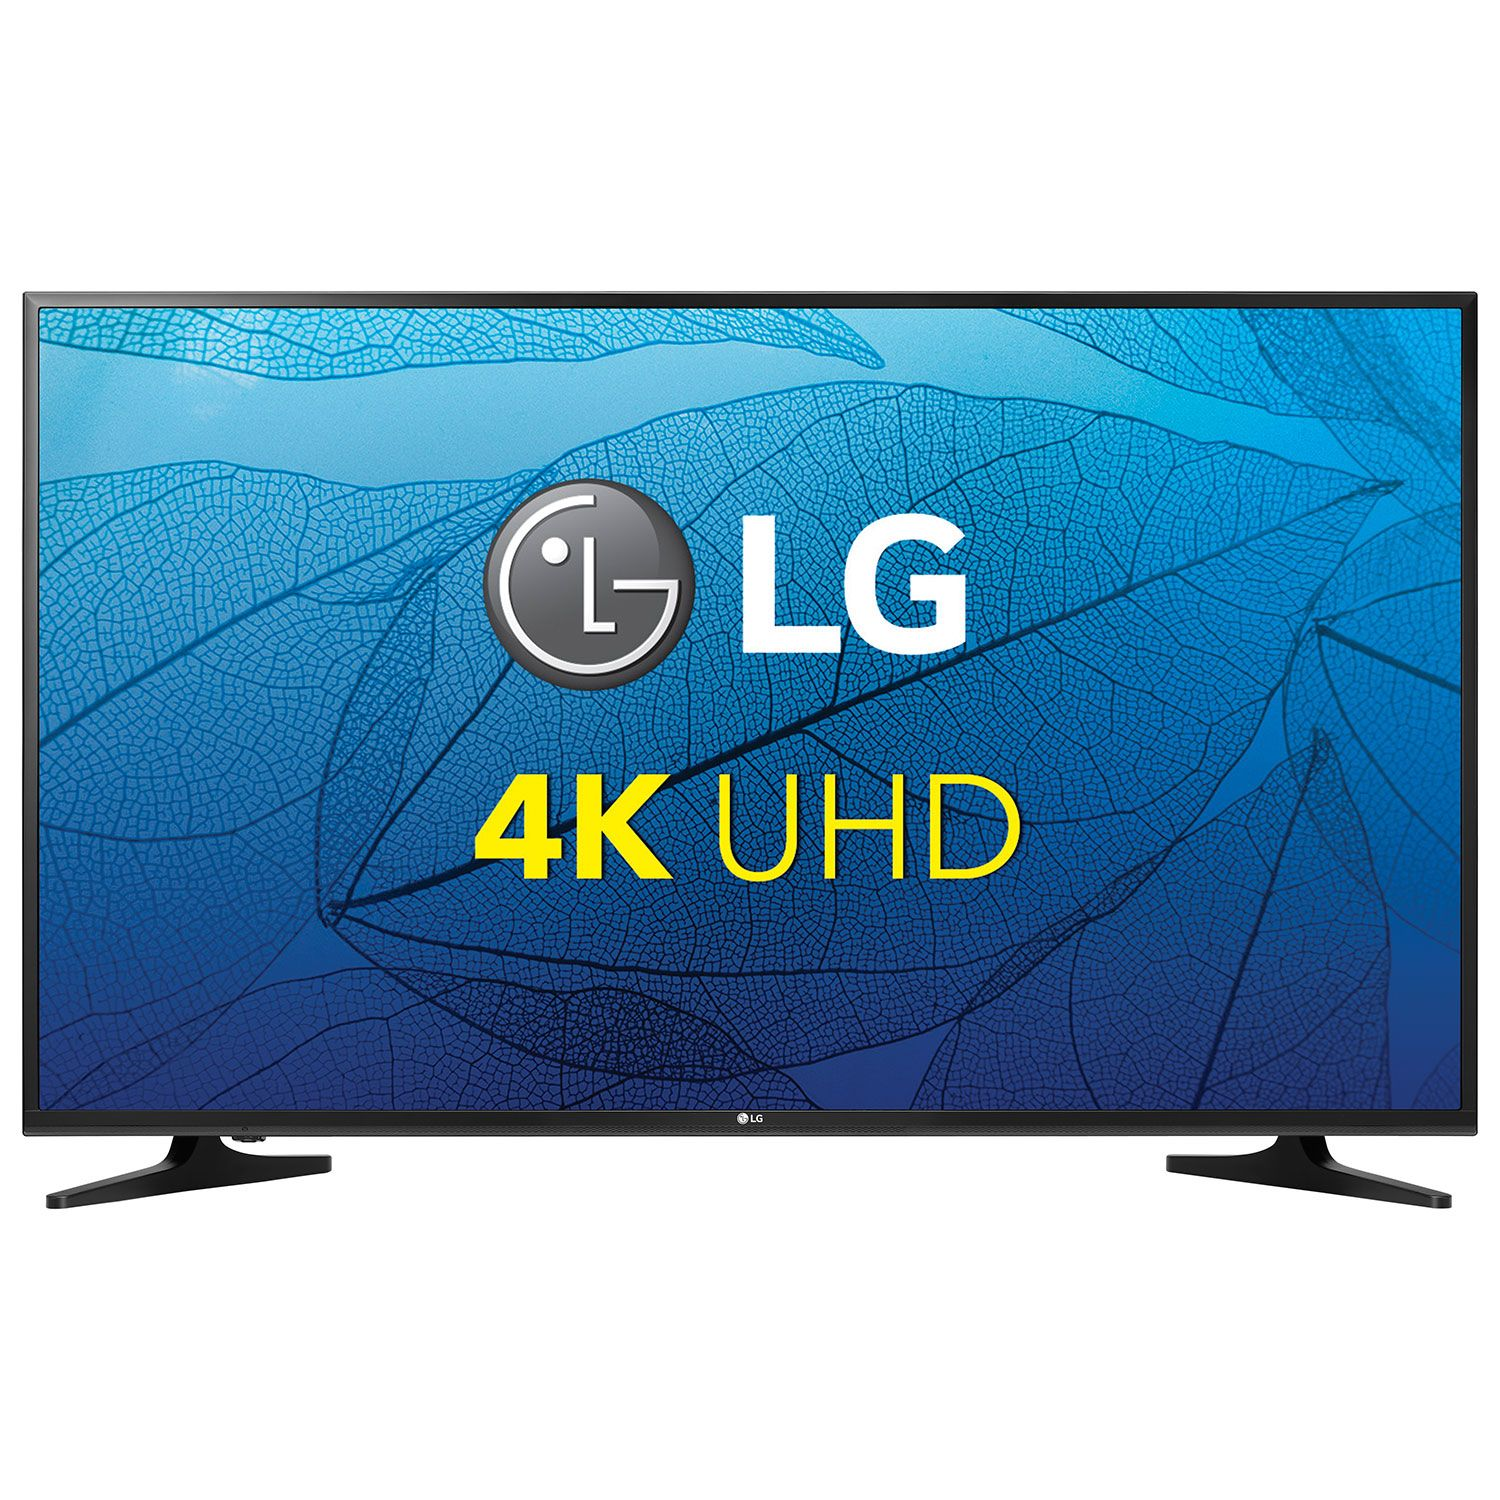 """Stoke the flames of your imagination with the LG 65"""" UH5500 4K UHD Smart TV With 4 times the resolution of Full HD this TV displays jaw dropping detail"""